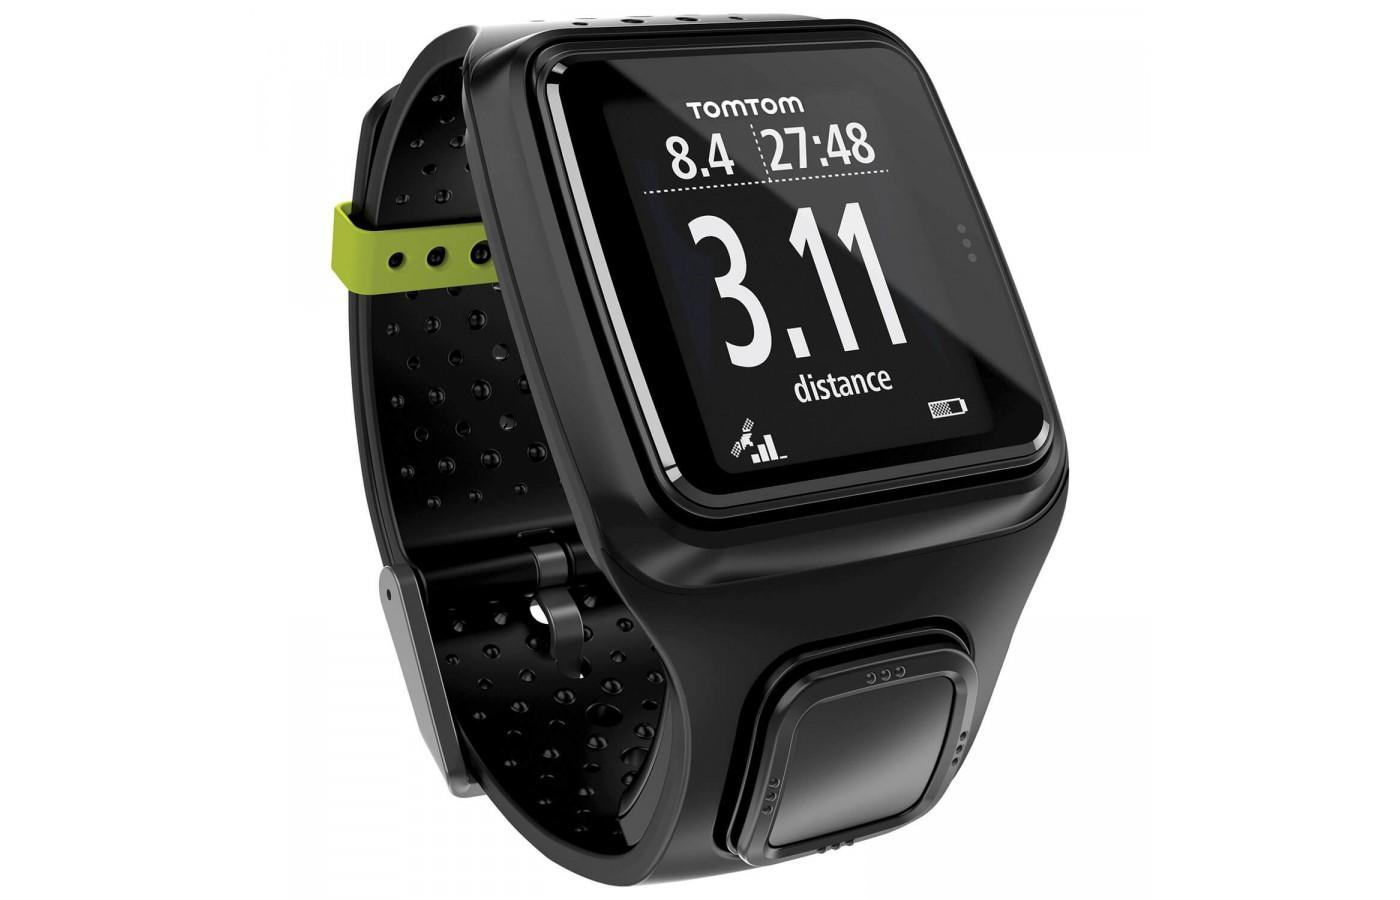 the TomTom runner comes in 3 different colors